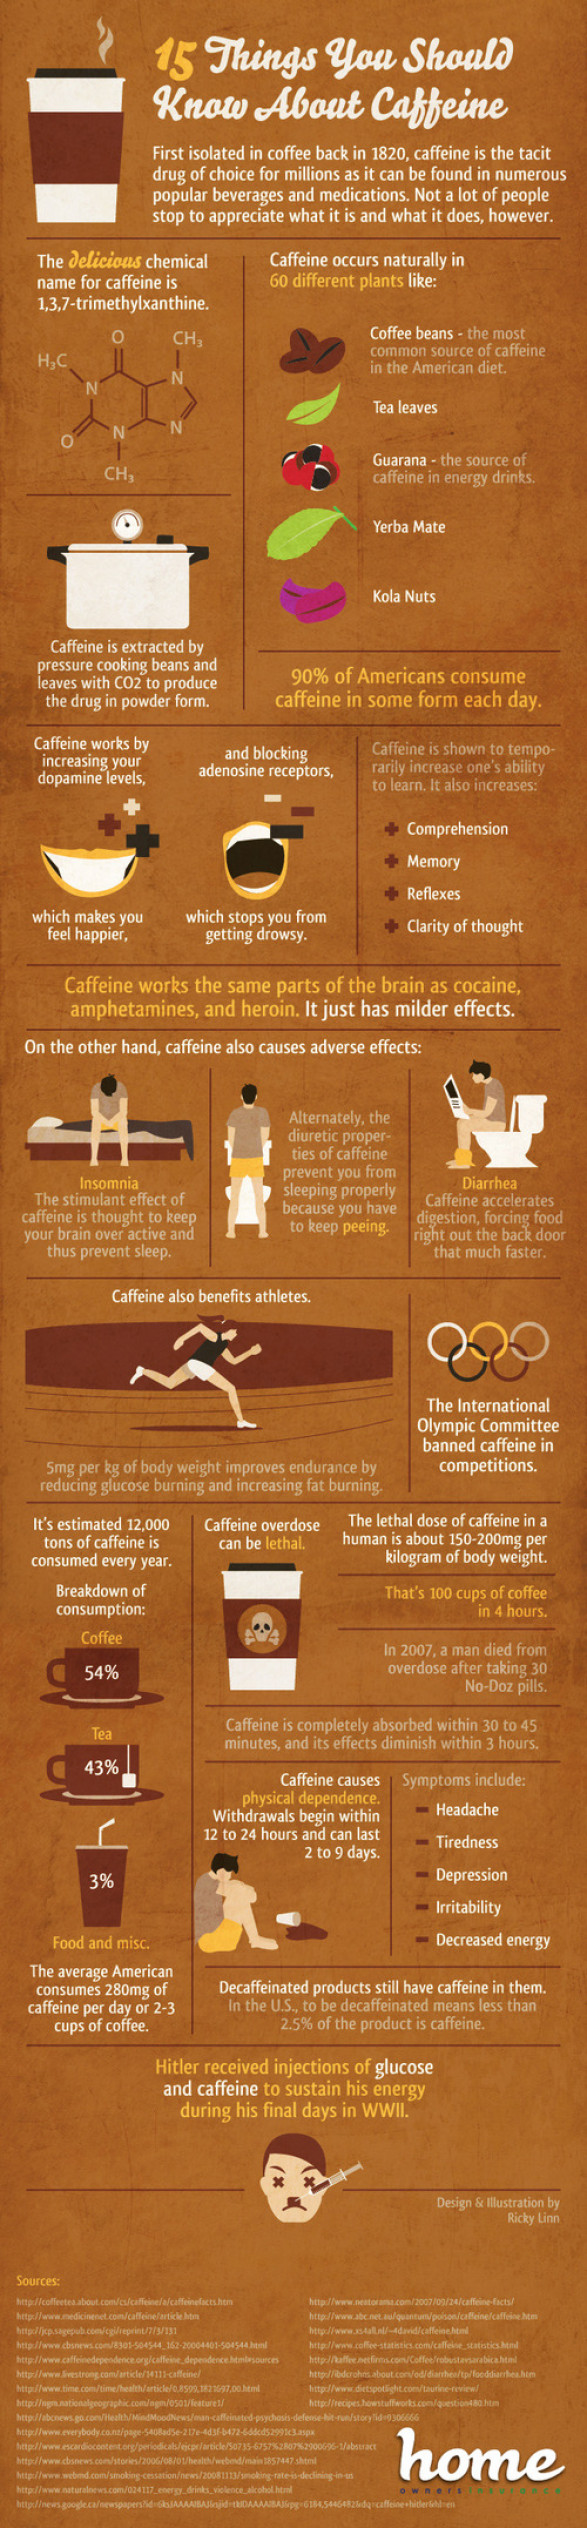 Important Facts About Caffeine